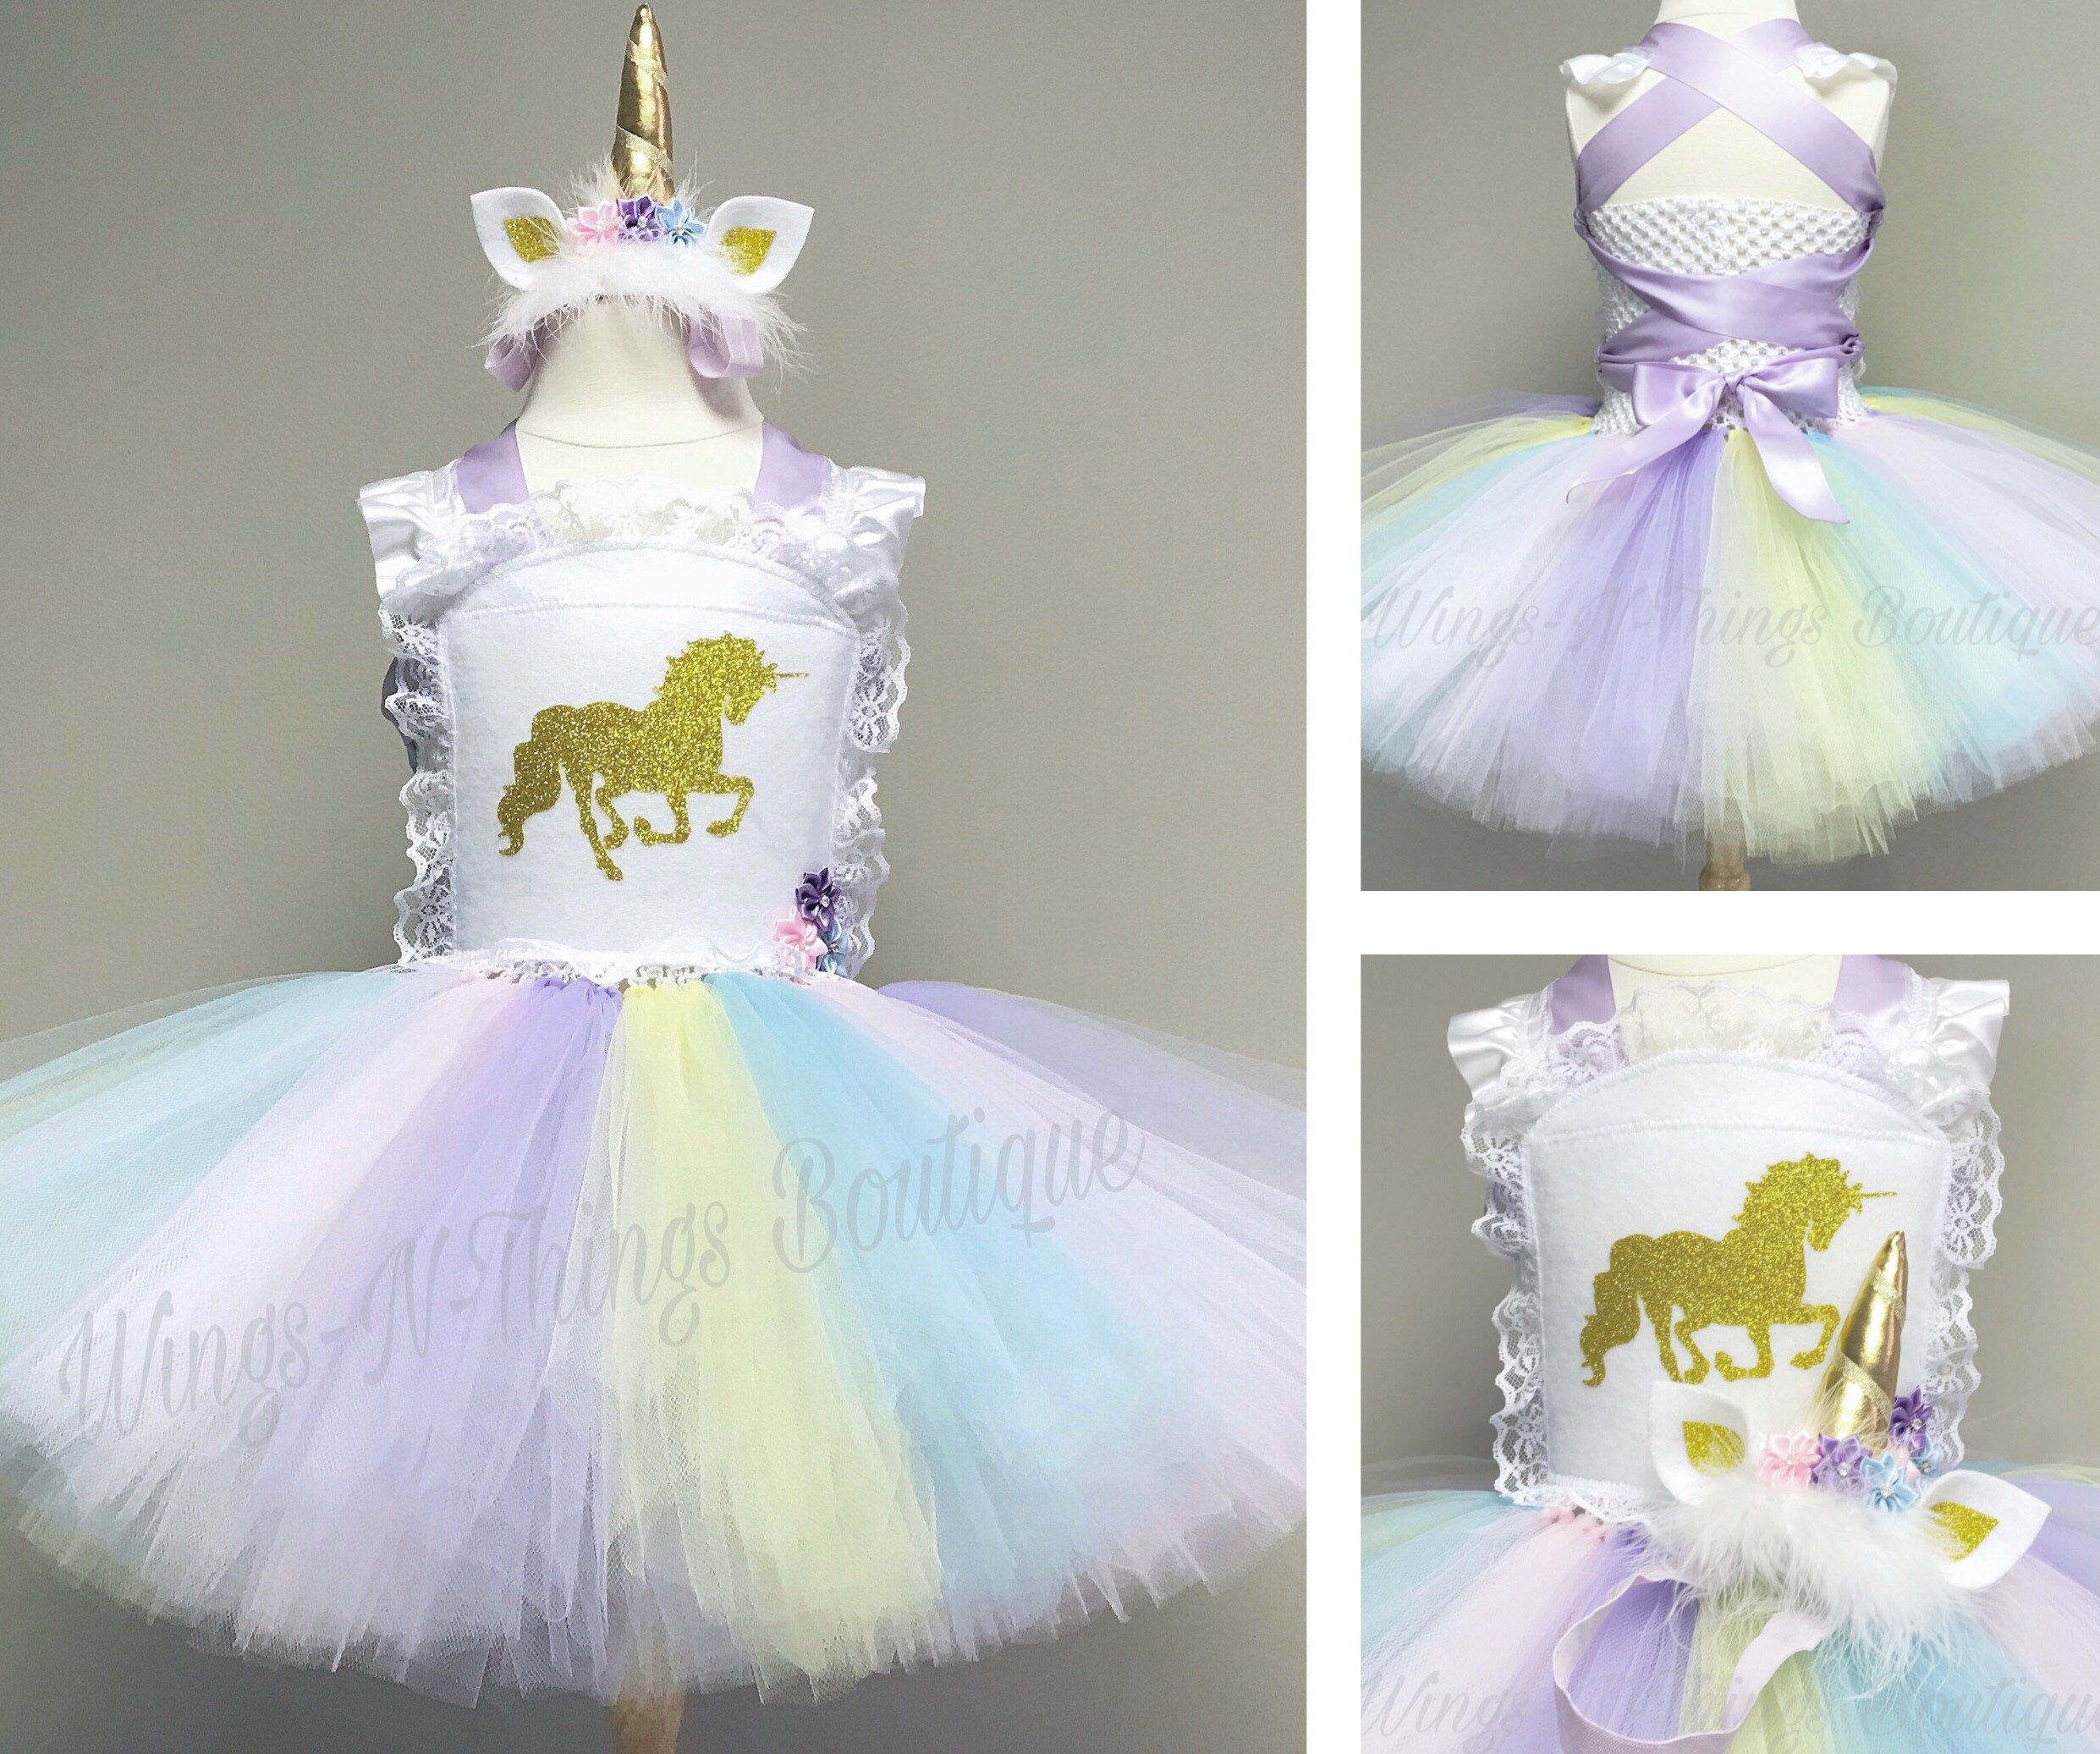 8f69e5257981f BABY UNICORN DRESS W/ Unicorn Horn Headband Tutu Dress Kids Halloween  Costume Toddler Girls Infant Babies First Birthday